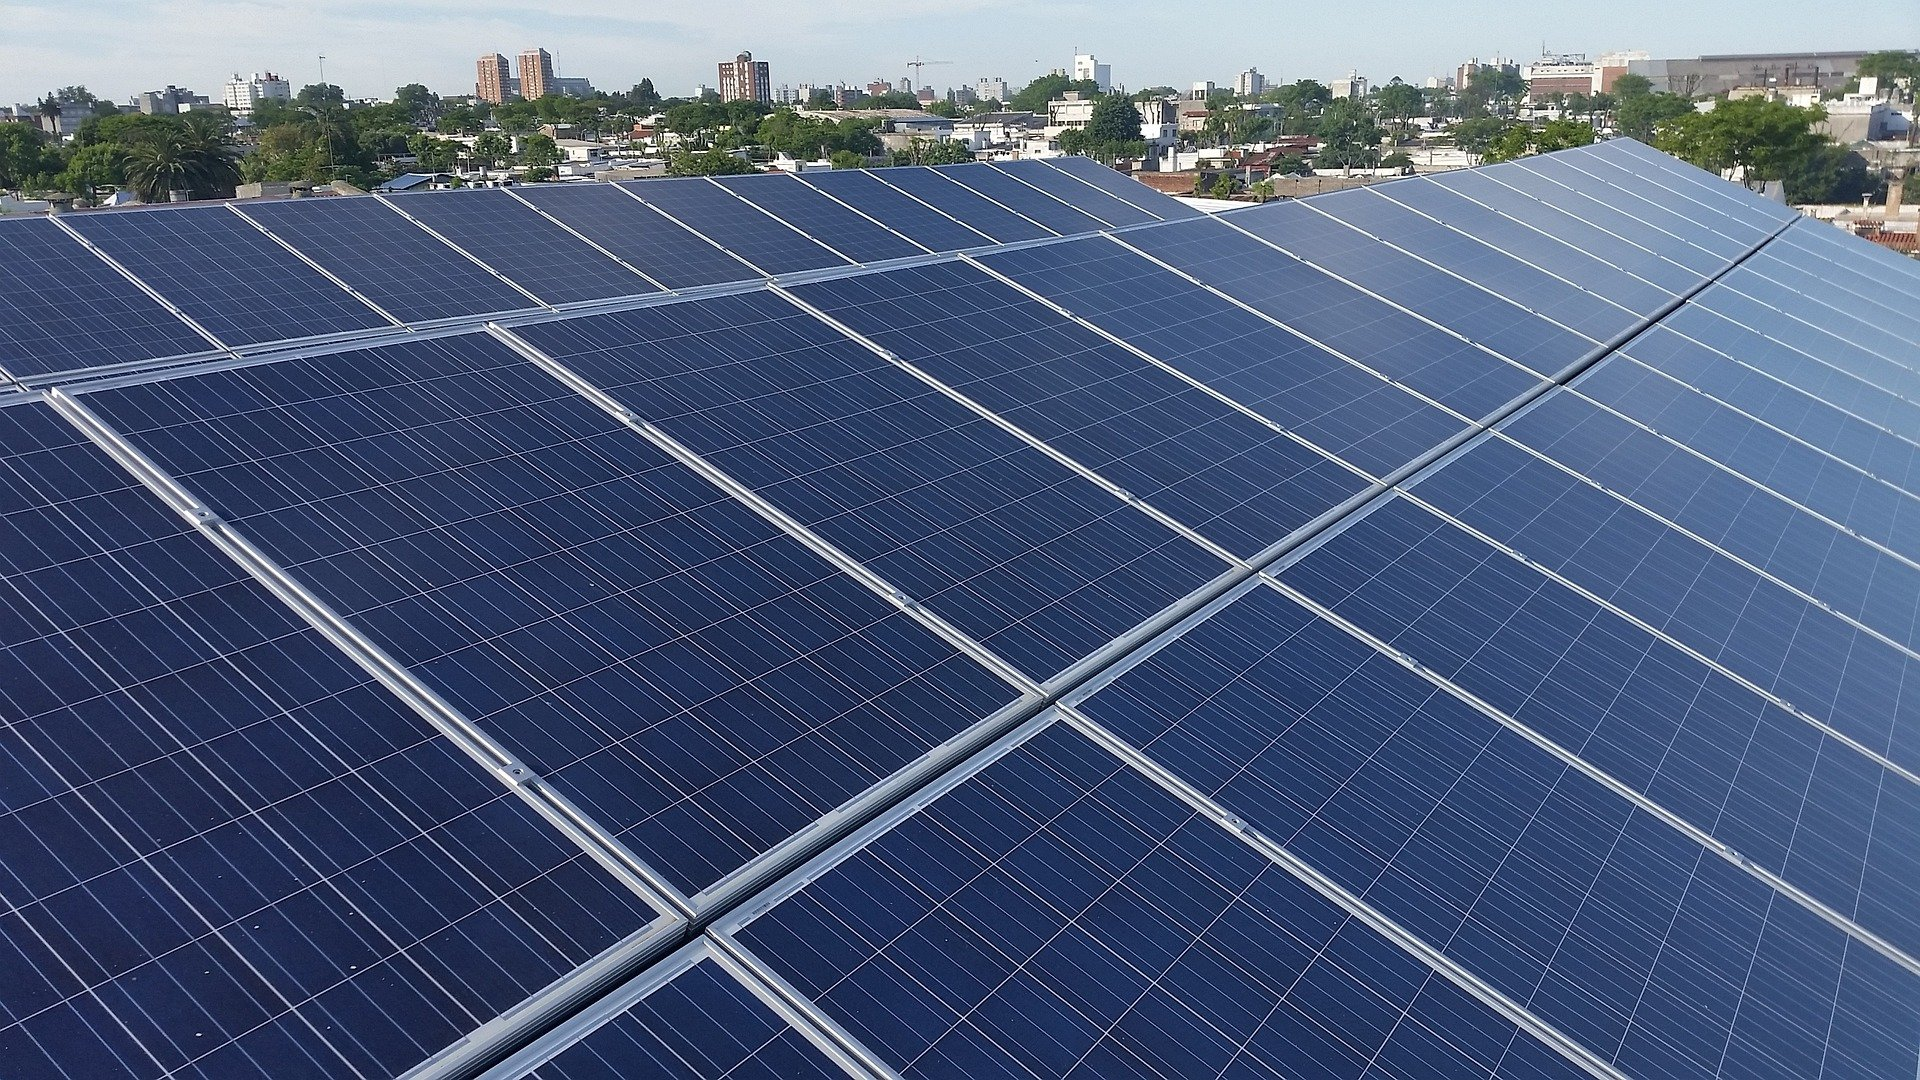 Commercial Solar Design Options - Commercial Solar Design Options